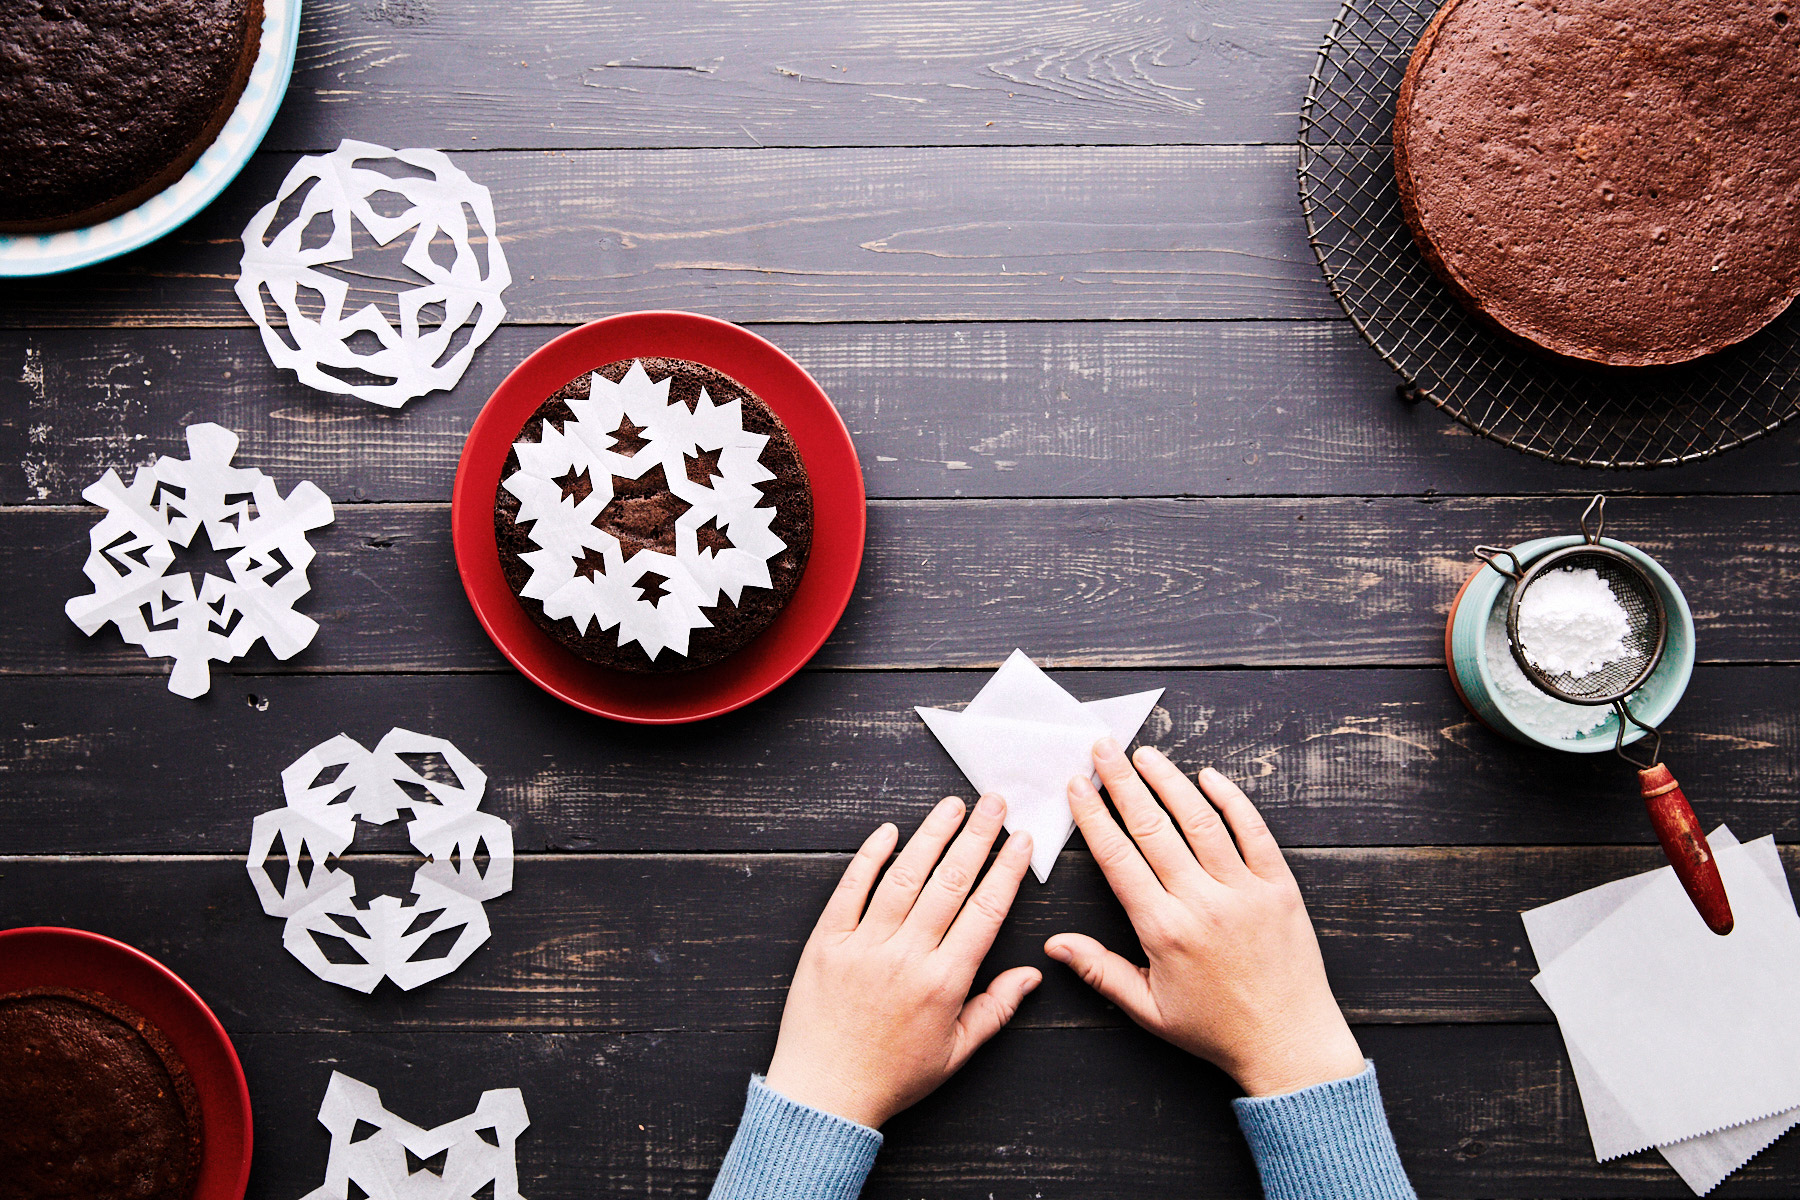 folded paper forming stencil snowflake cake decorating